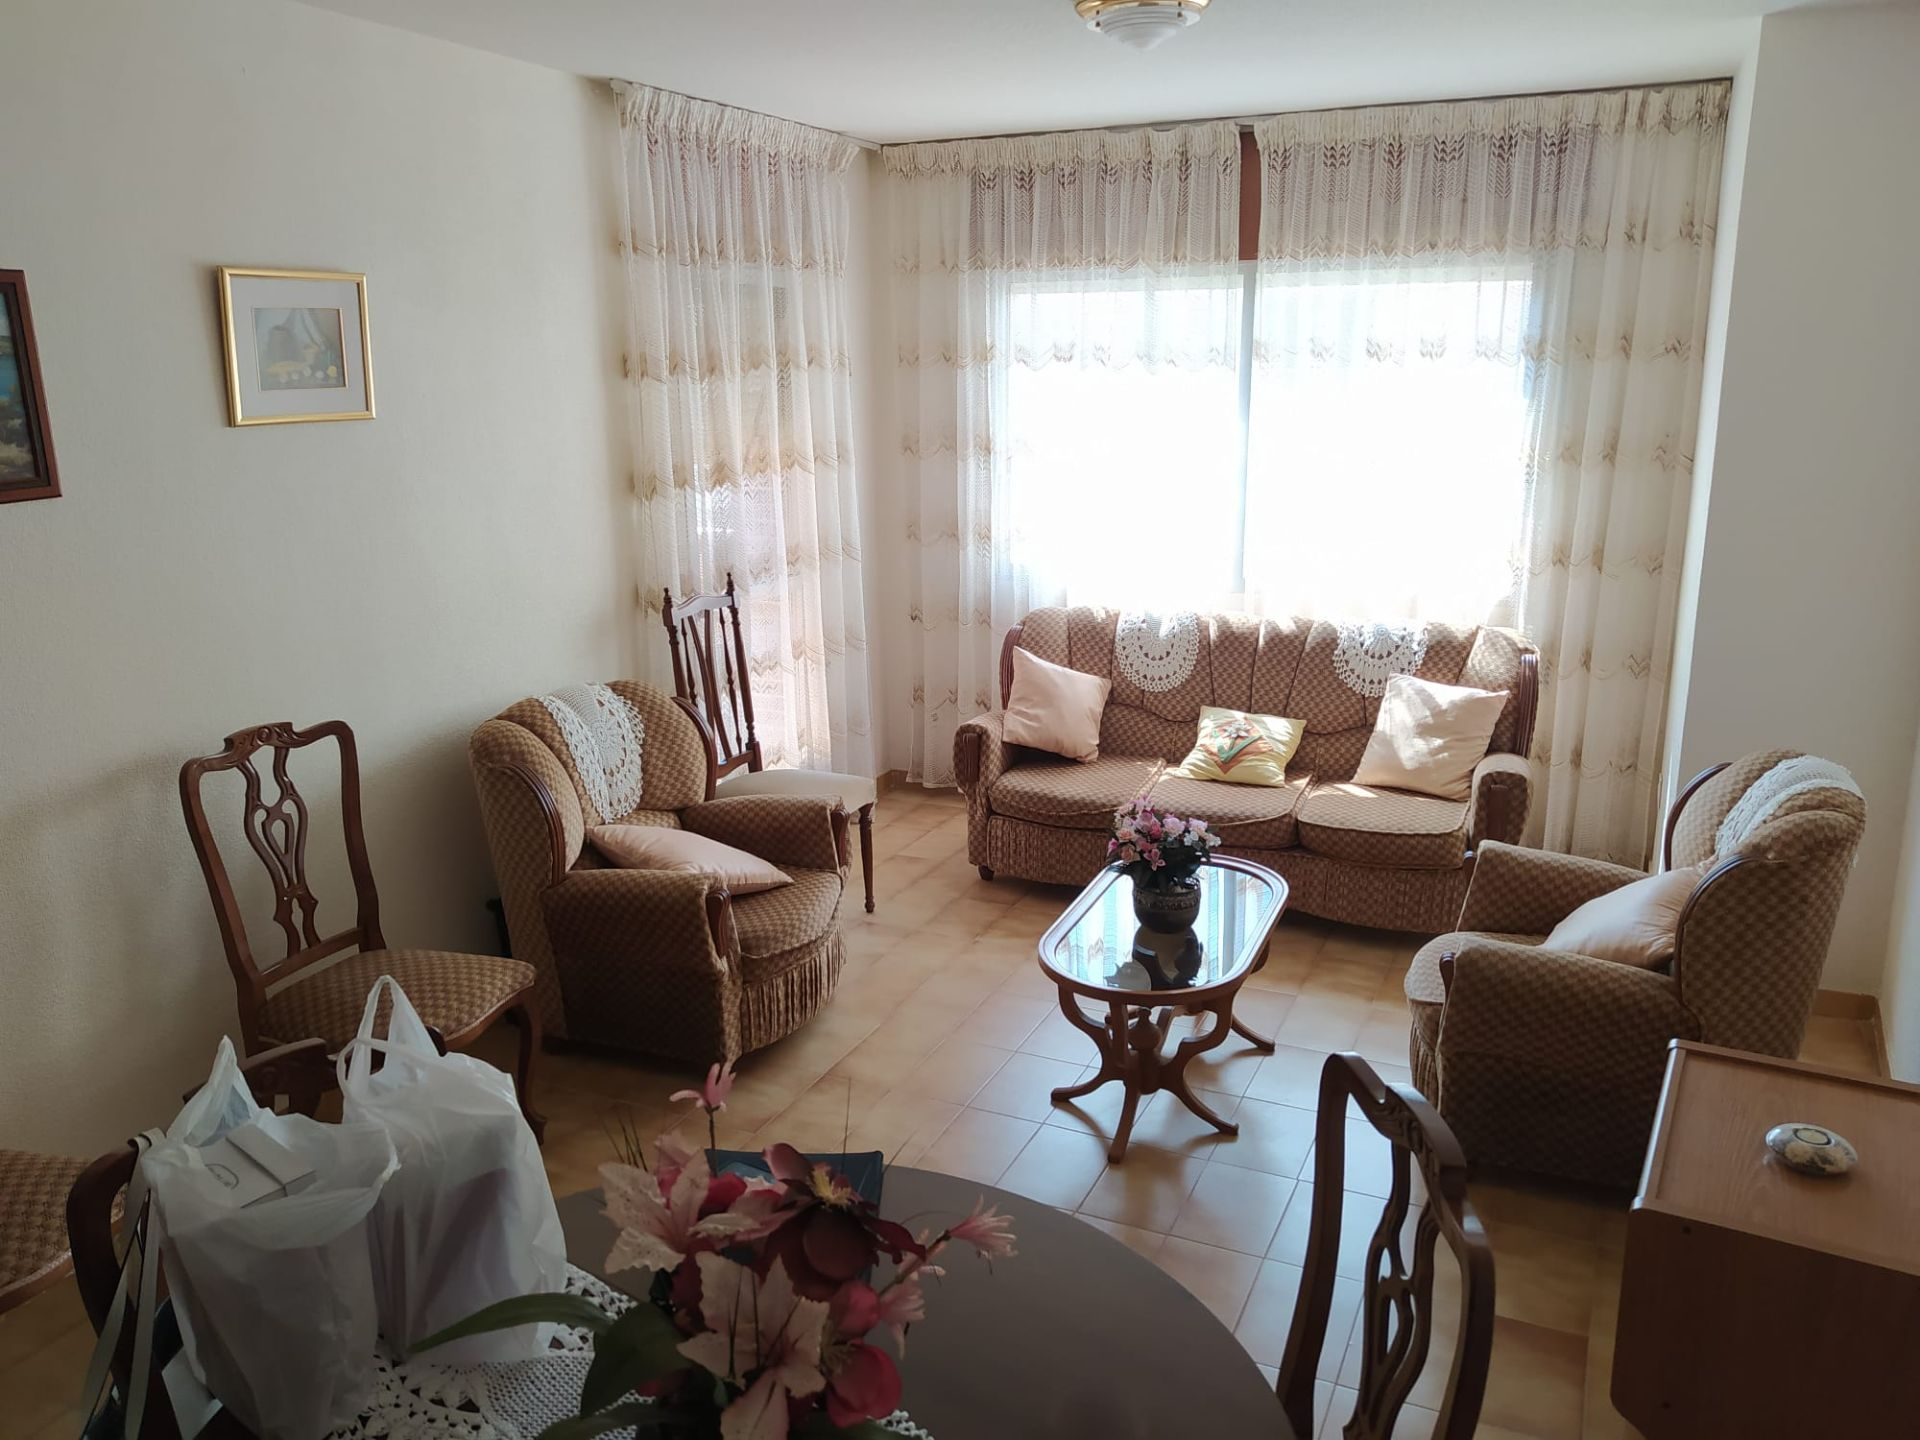 Flat (5 rooms - 135 sqm) in SAN PEDRO DEL PINATAR